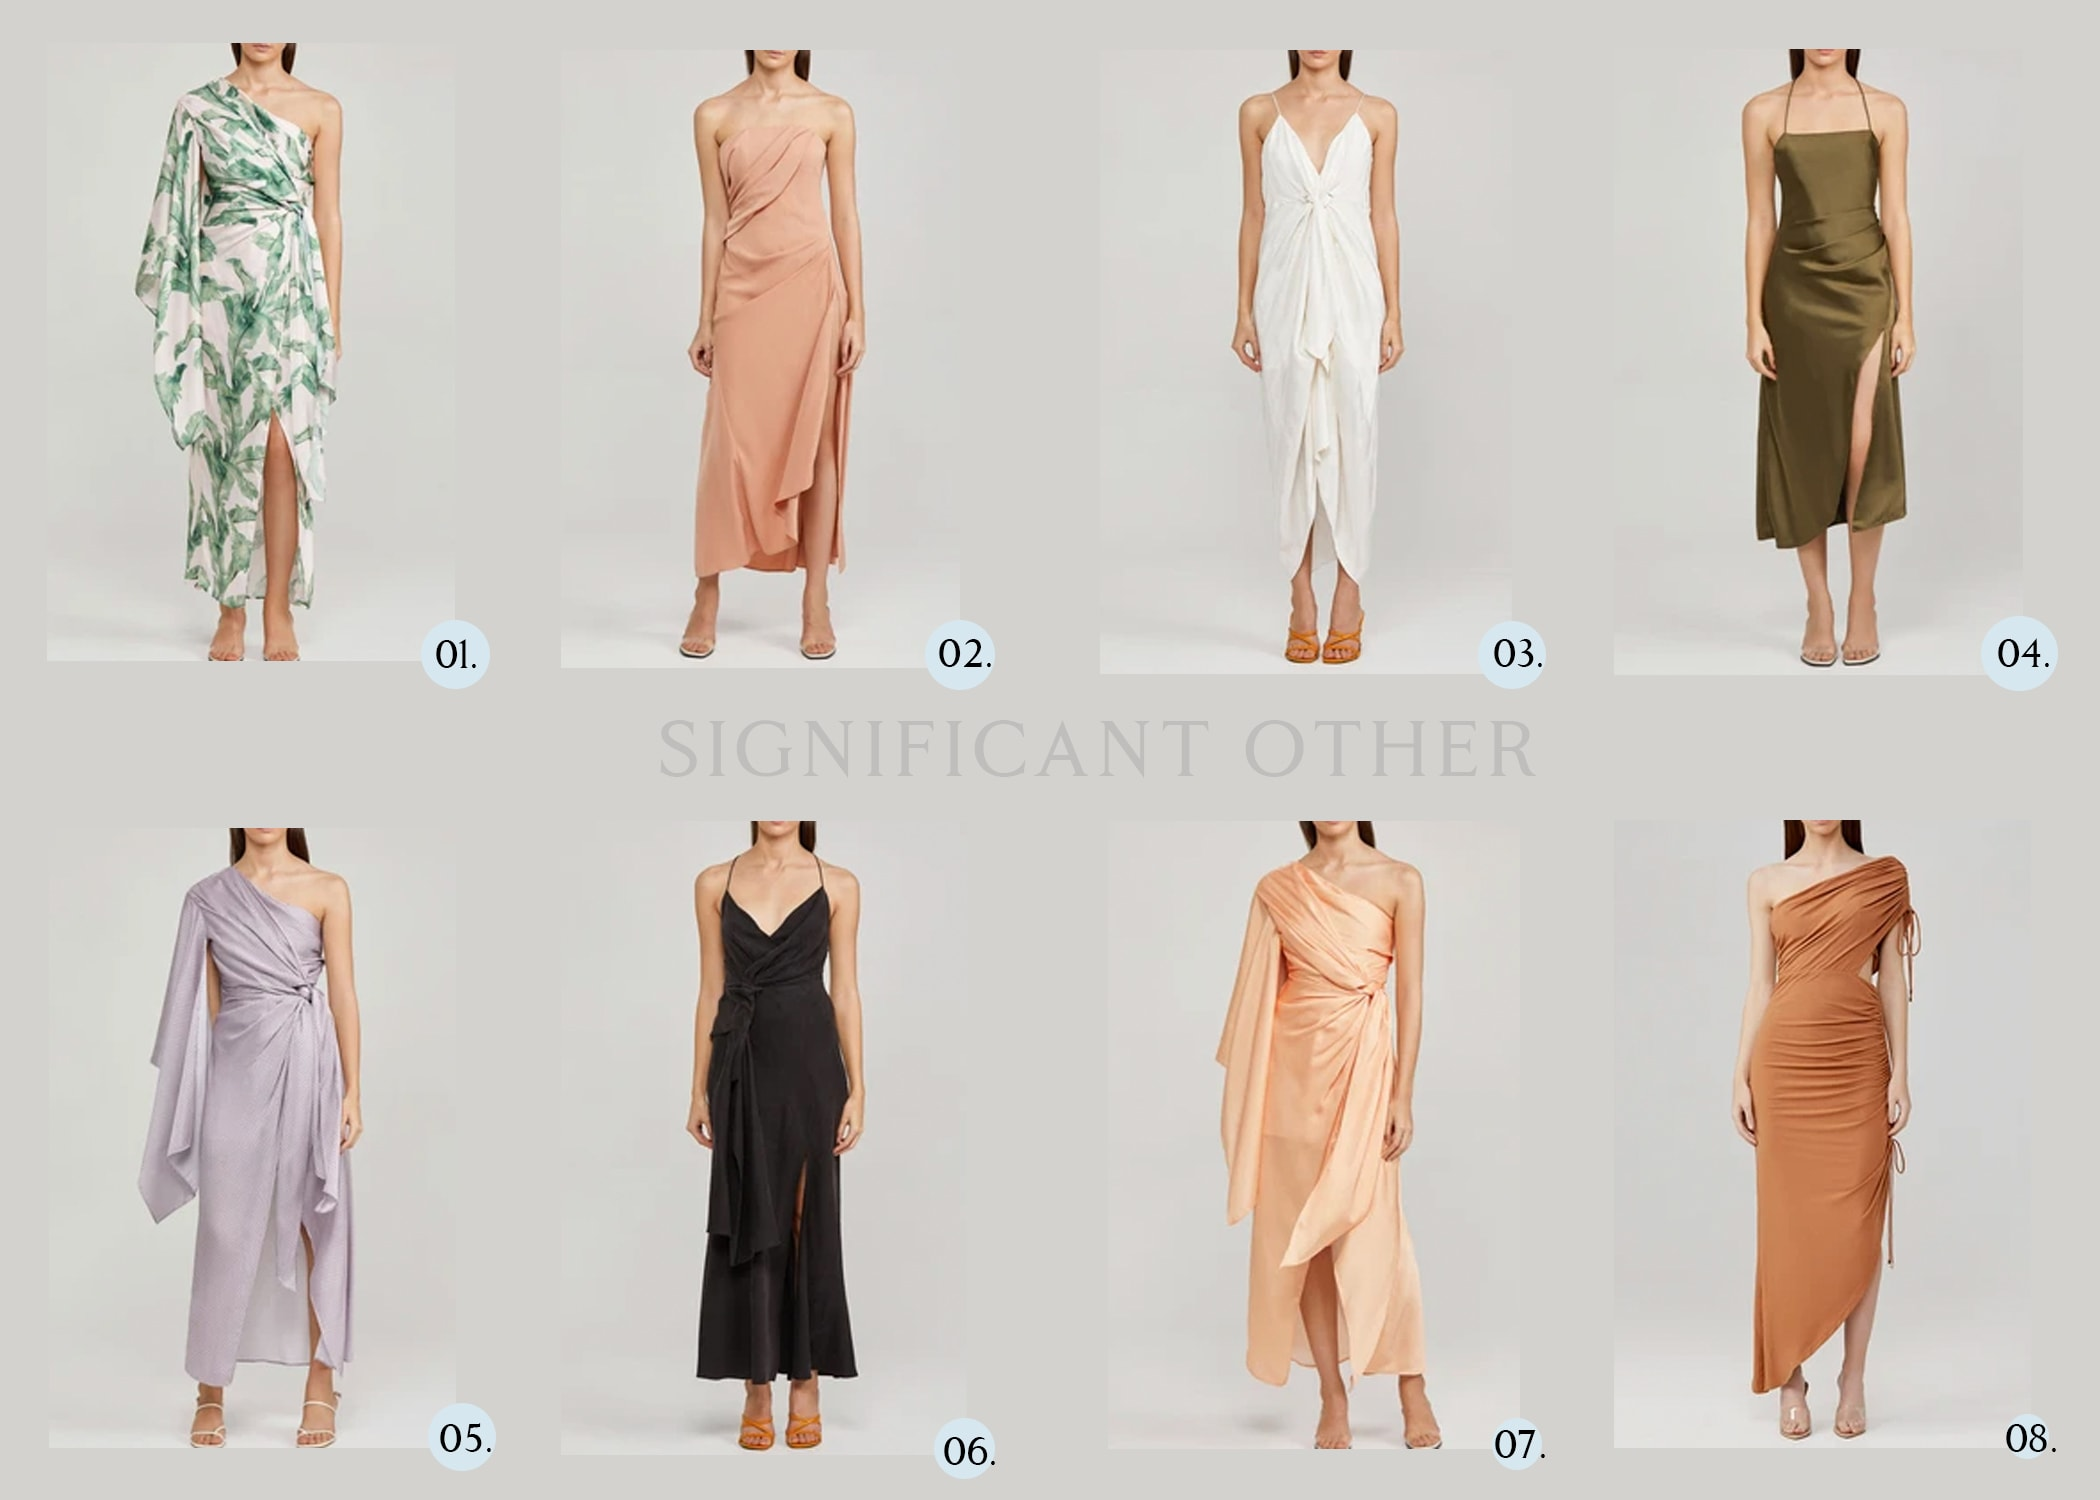 significant other fashion label bridesmaids dresses